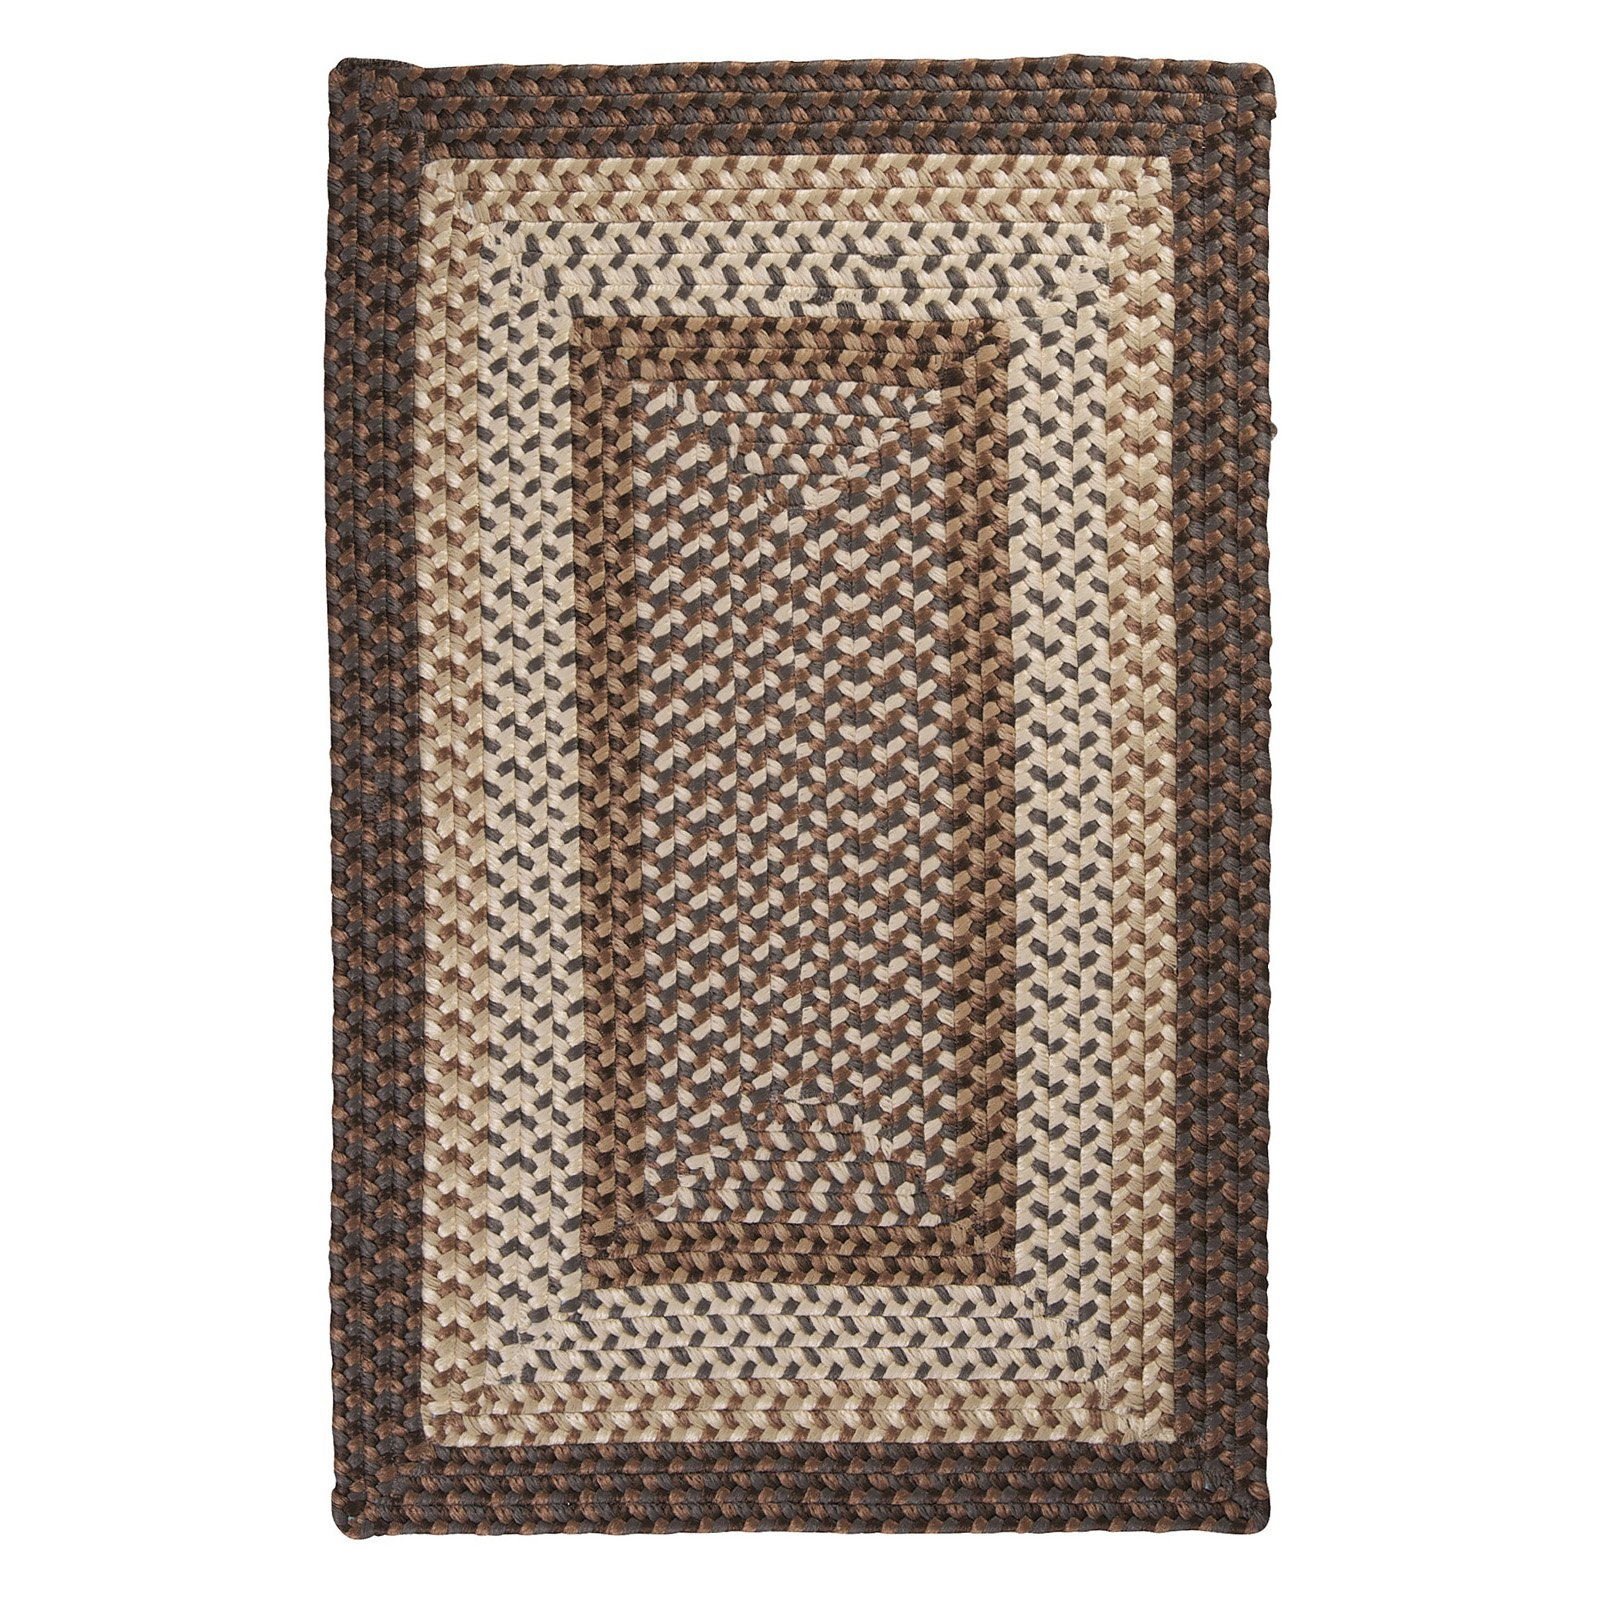 Colonial Mills TB19R Tiburon Indoor/Outdoor Braided Rug - Dockside - 36L x 24W x 0.5H in.